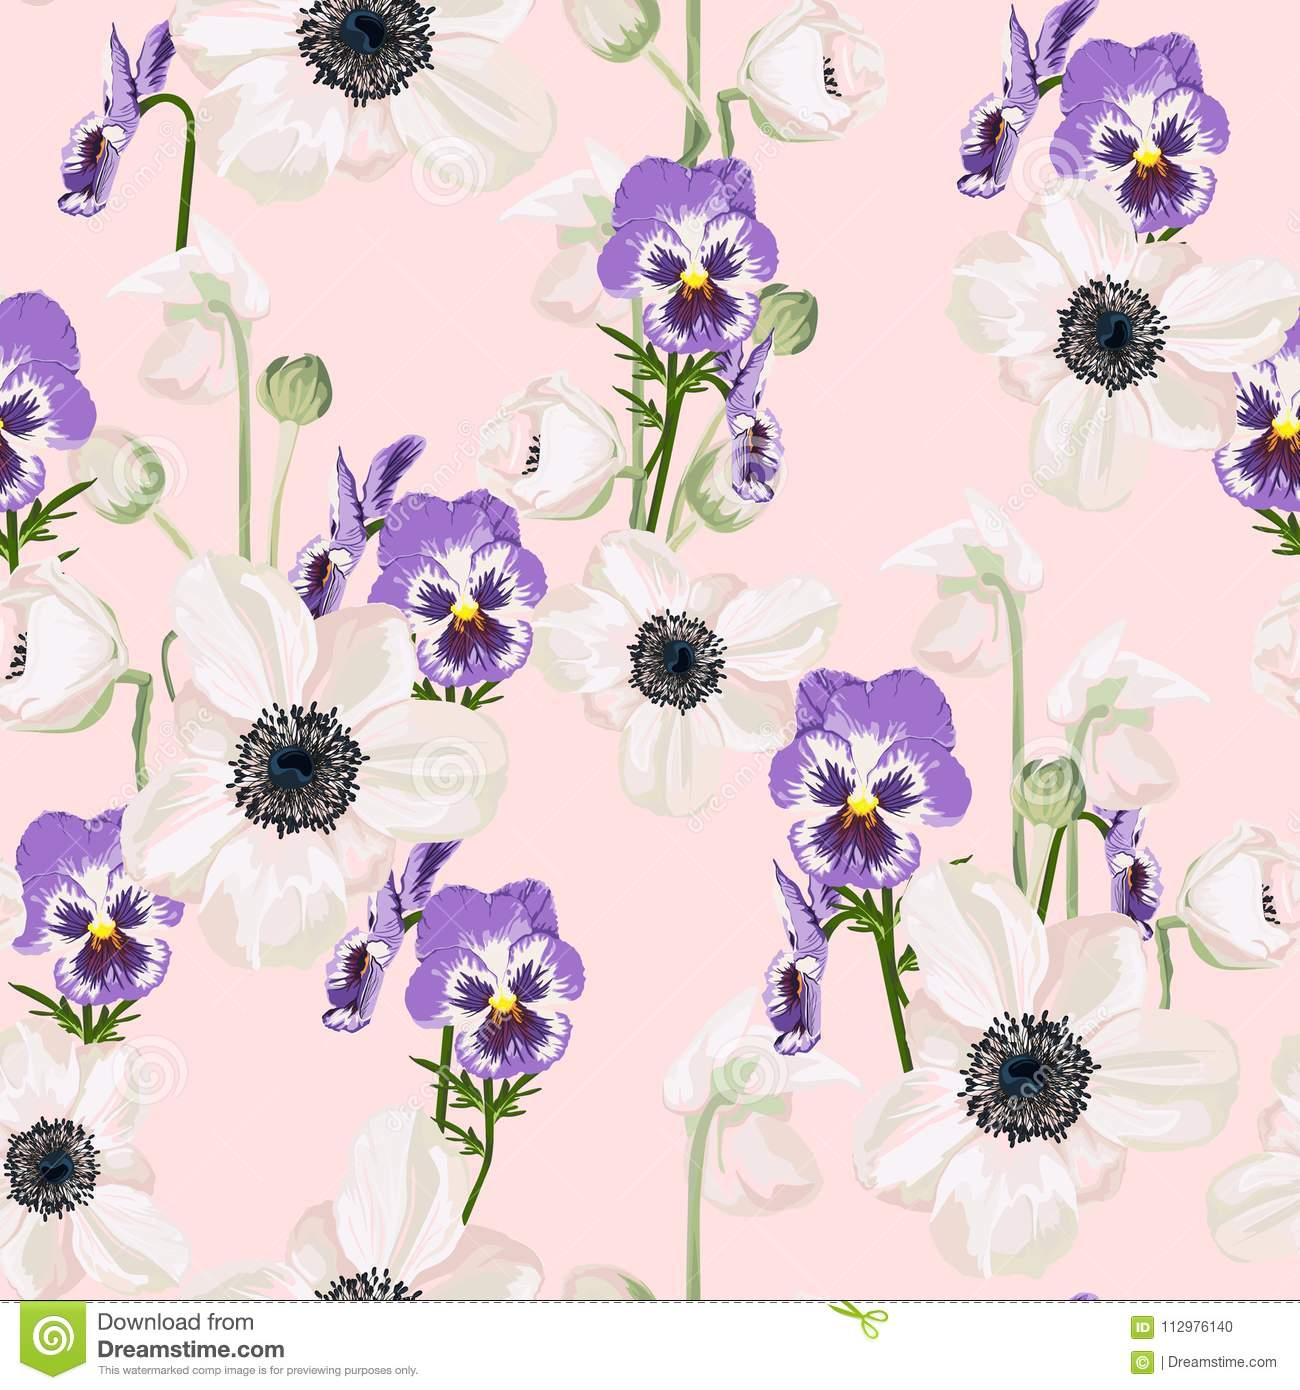 Seamless pattern with anemone and viola with pink background.